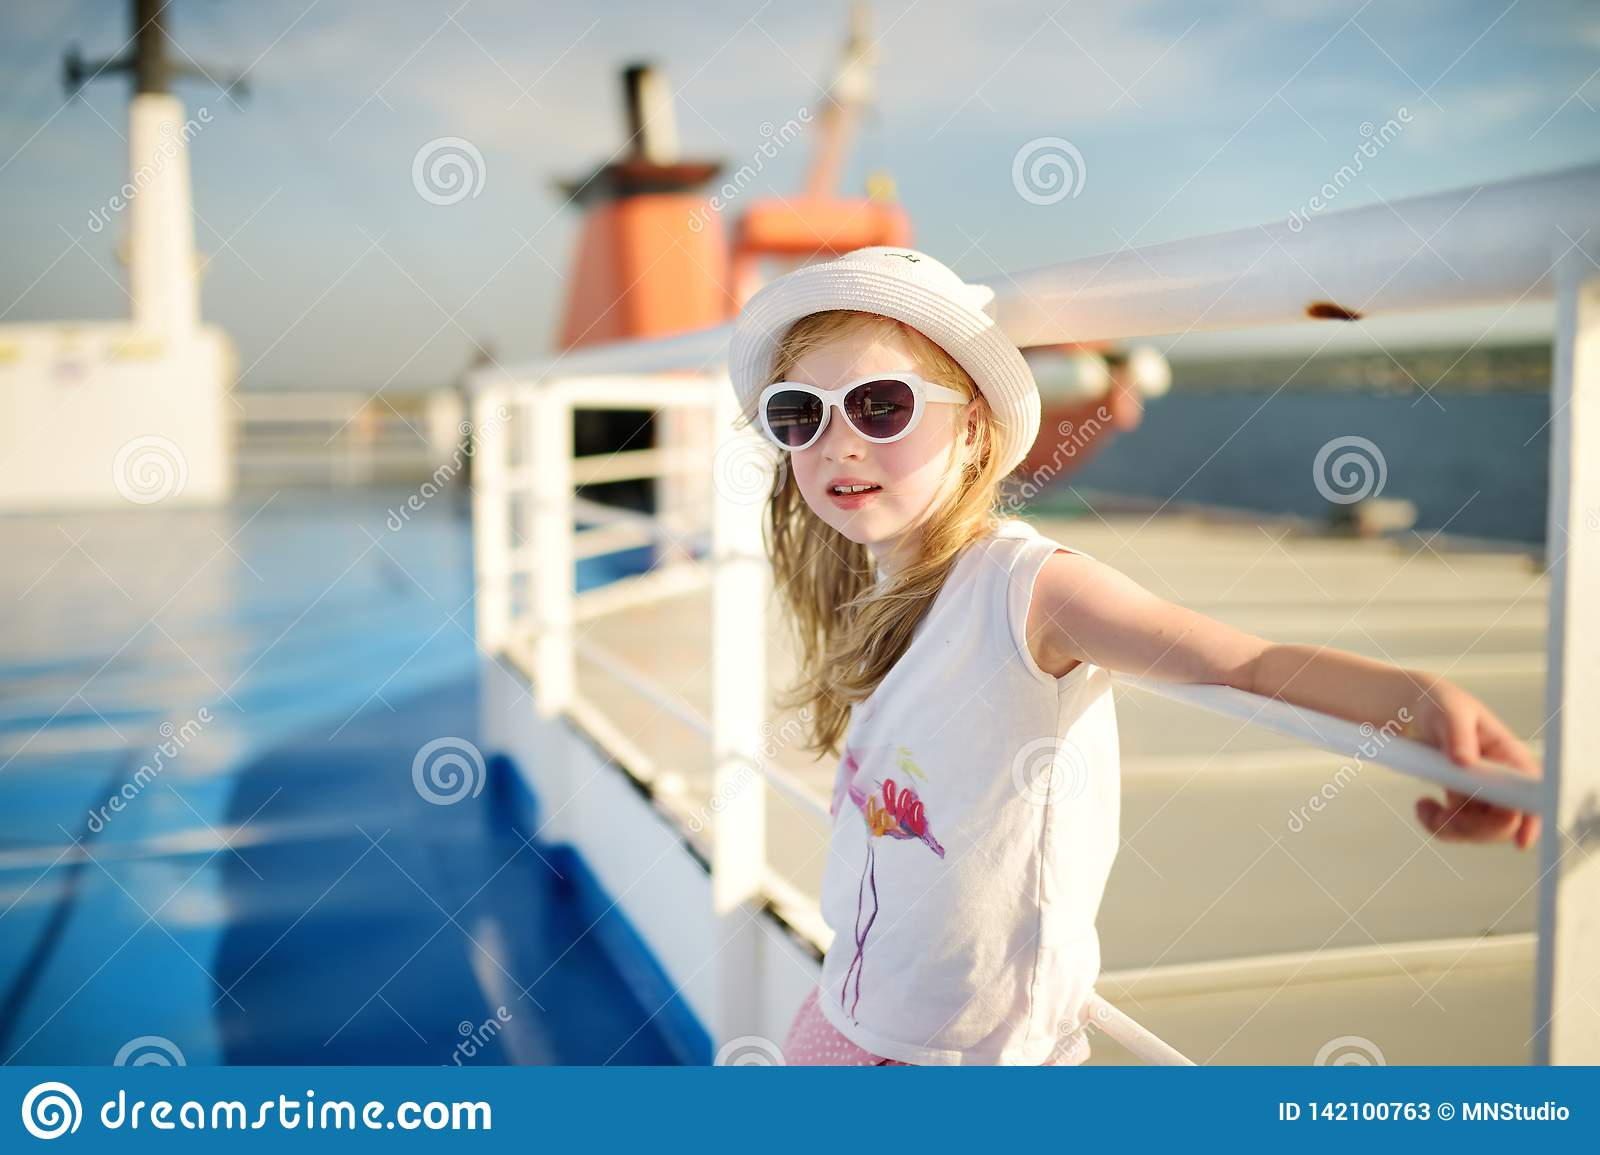 Adorable young girl enjoying ferry ride staring at the sea on sunset. Child having fun on summer family vacation in Greece